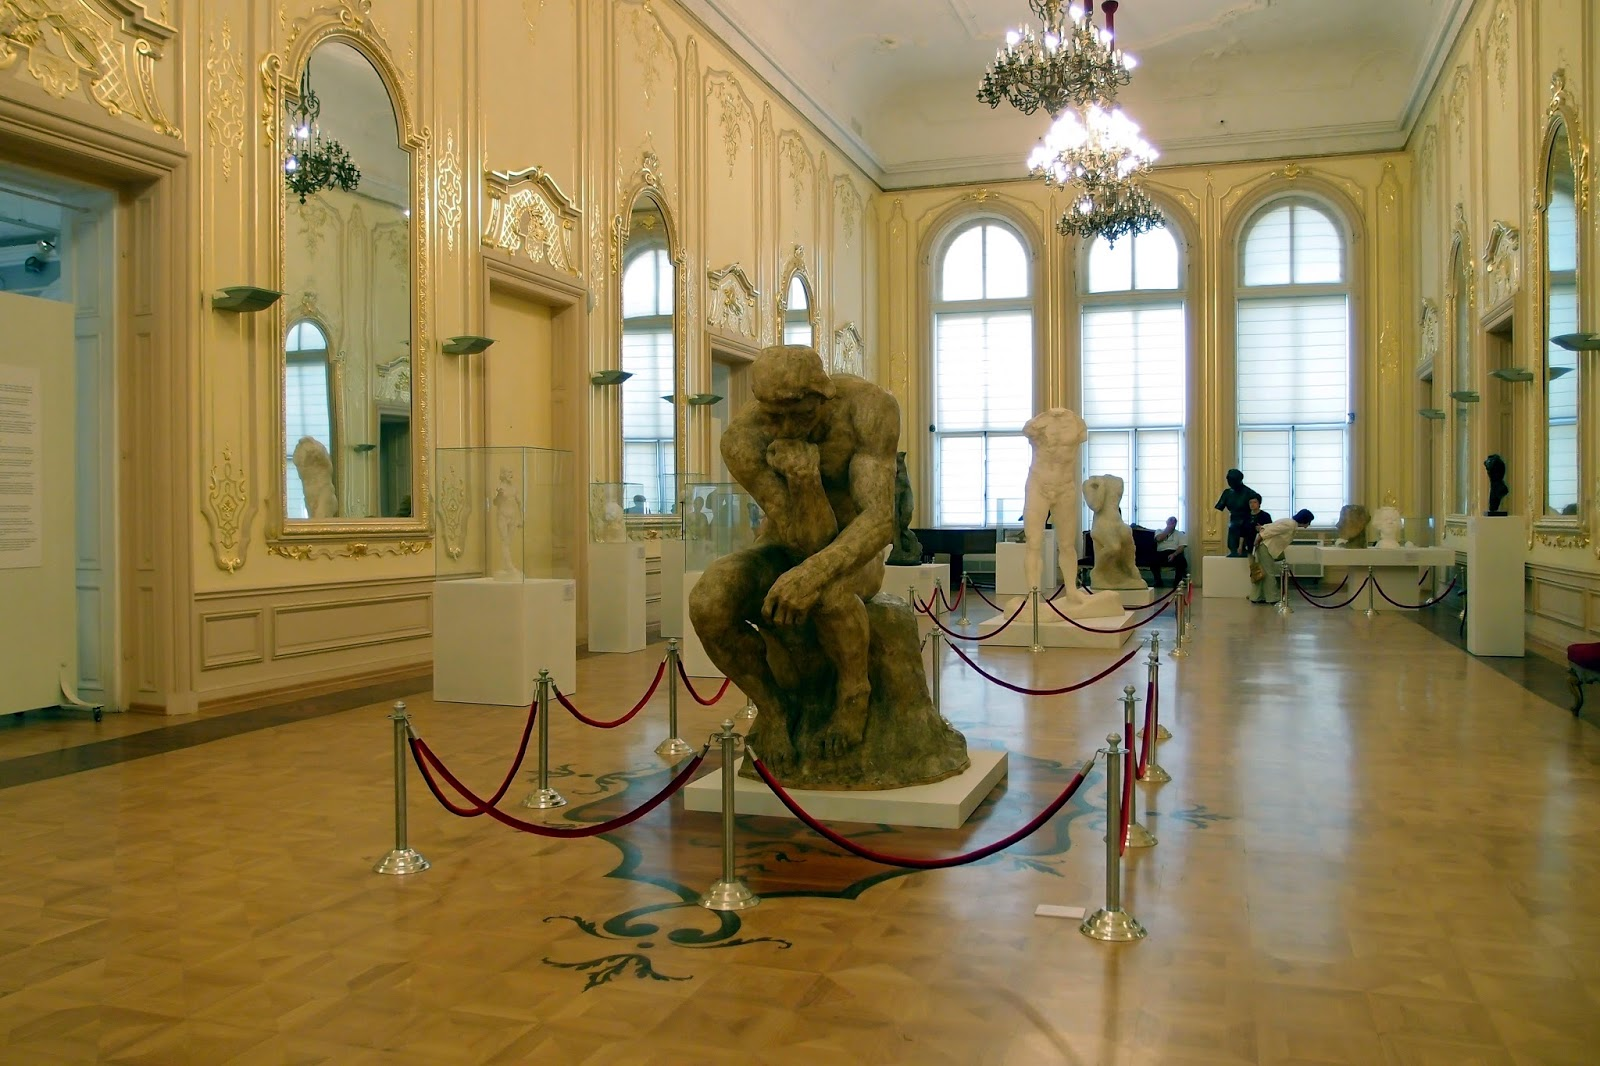 The central hall of the exibition with the Walking man